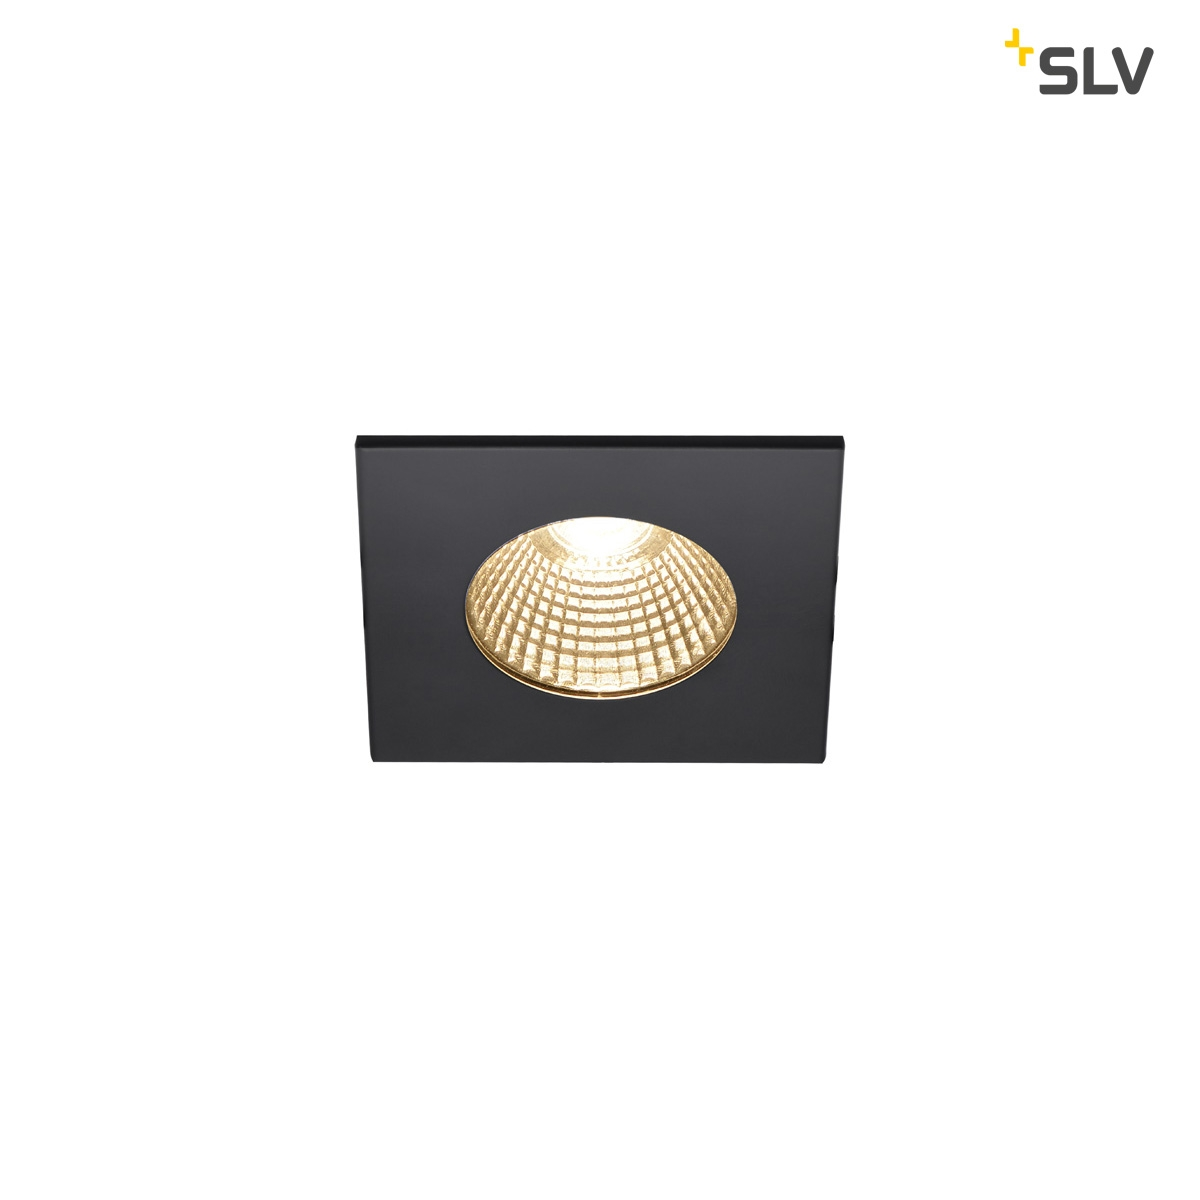 SLV Patta-I Square Downlight Dim to Warm